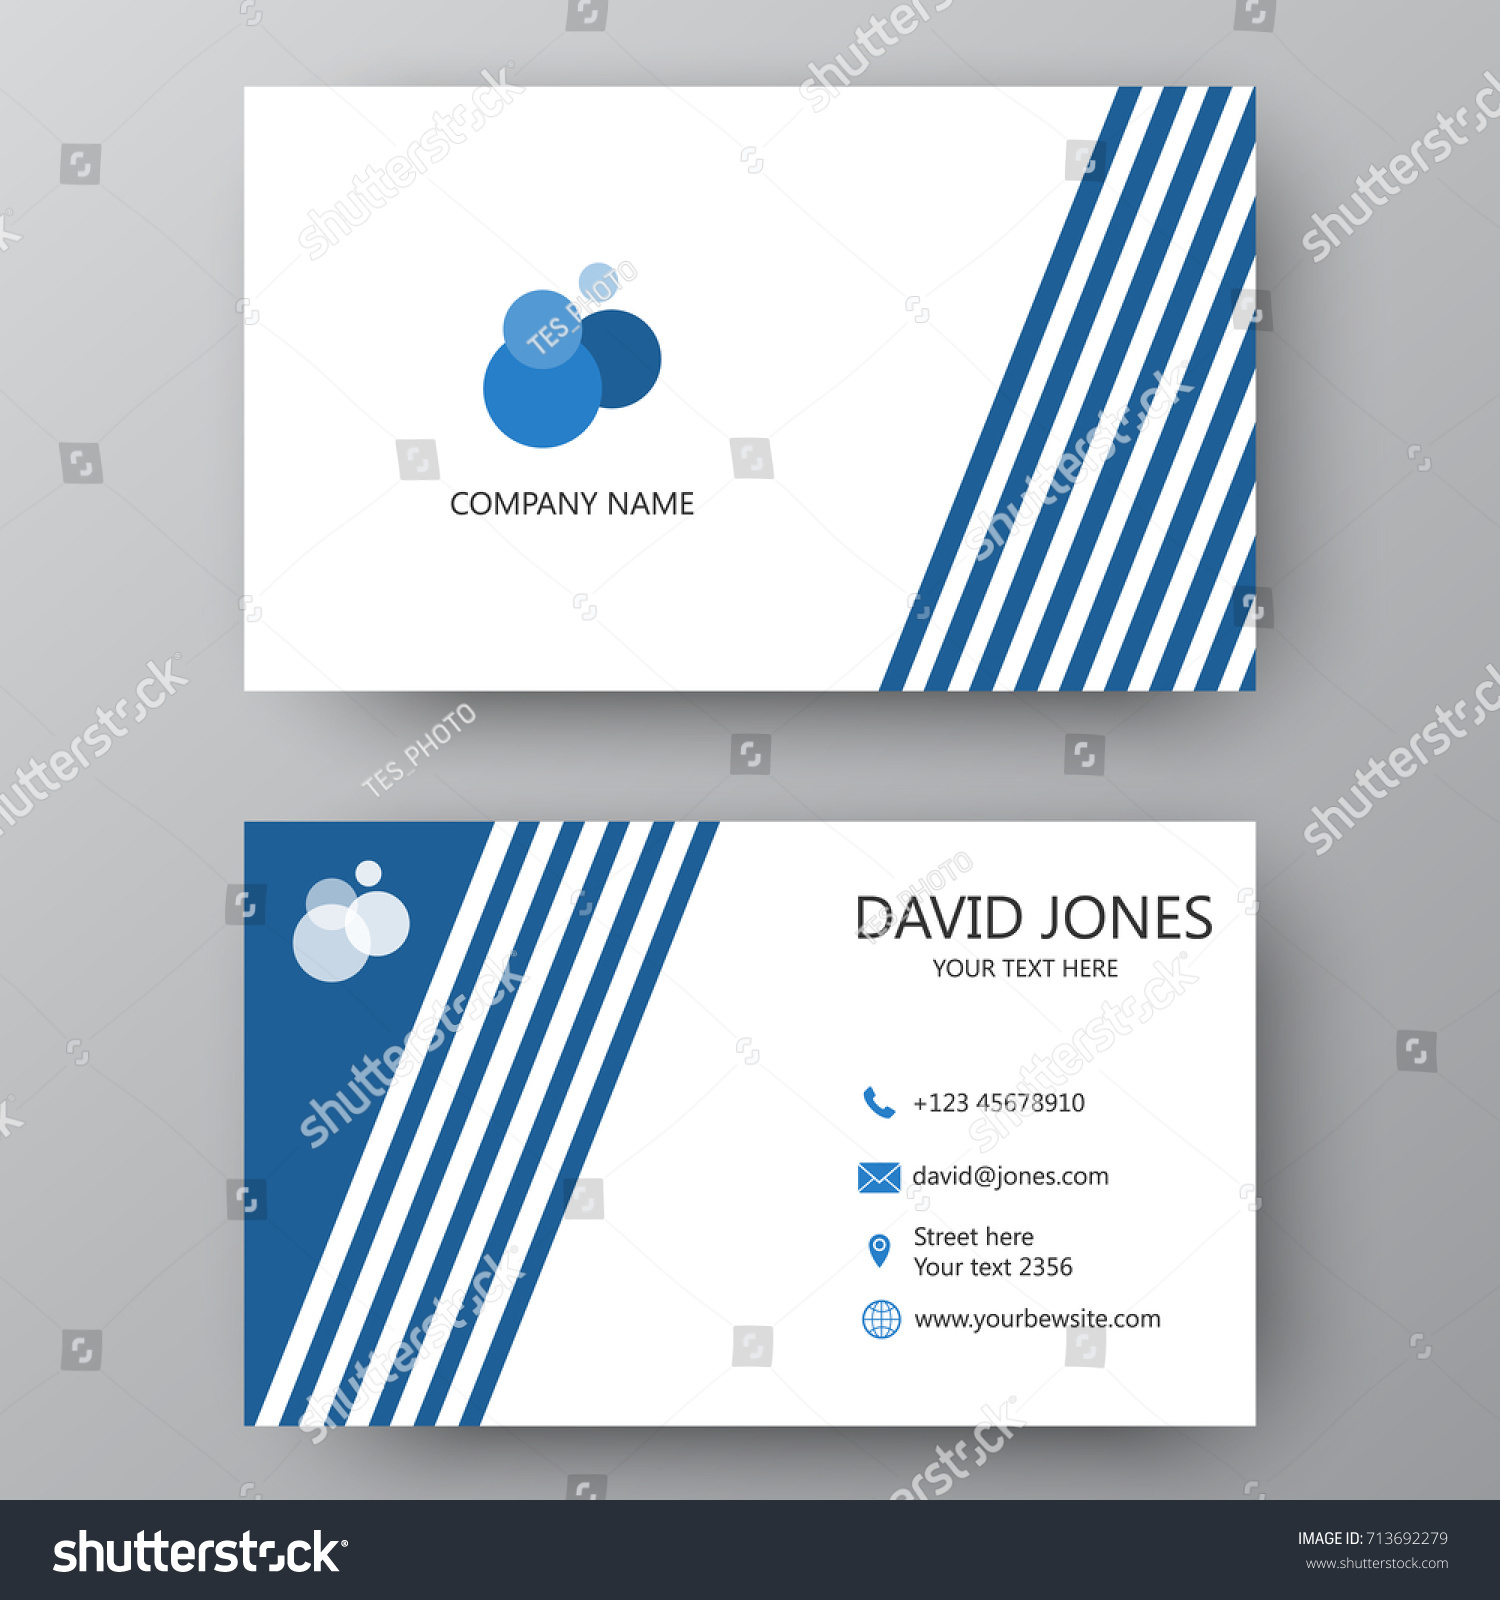 Amway business cards image collections free business cards amway business card choice image free business cards visiting card for business images free business cards magicingreecefo Gallery